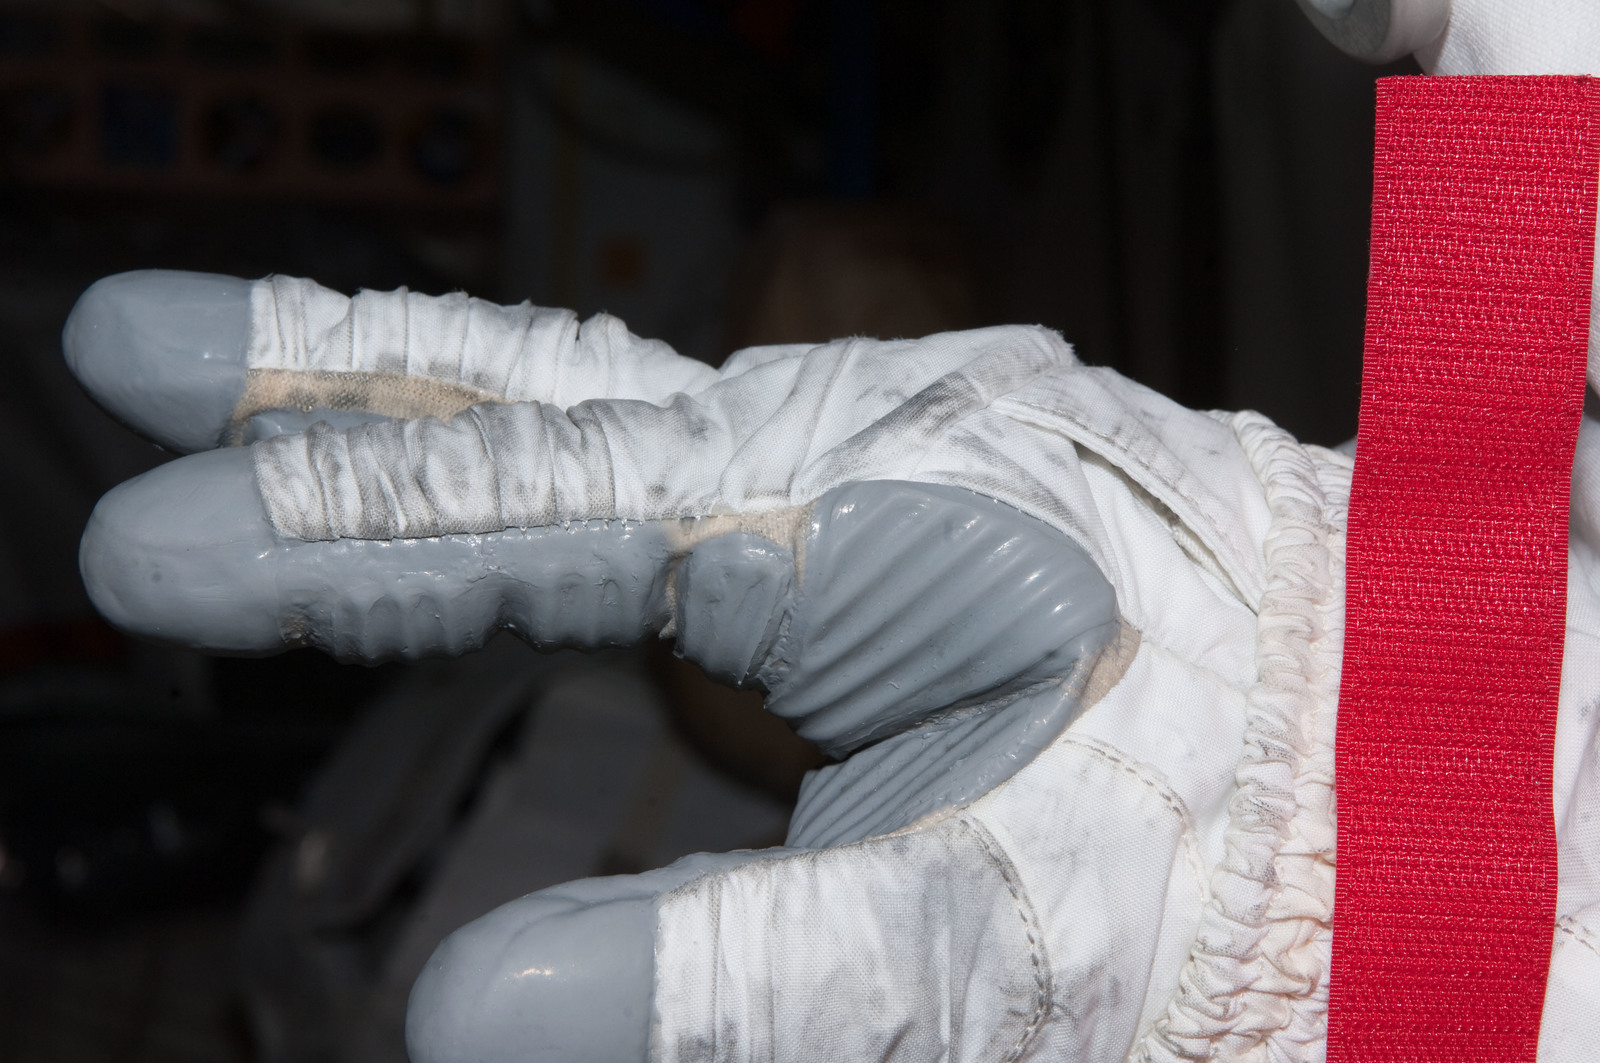 S126E008957 - STS-126 - Inspection of EMU Glove after EVA 3